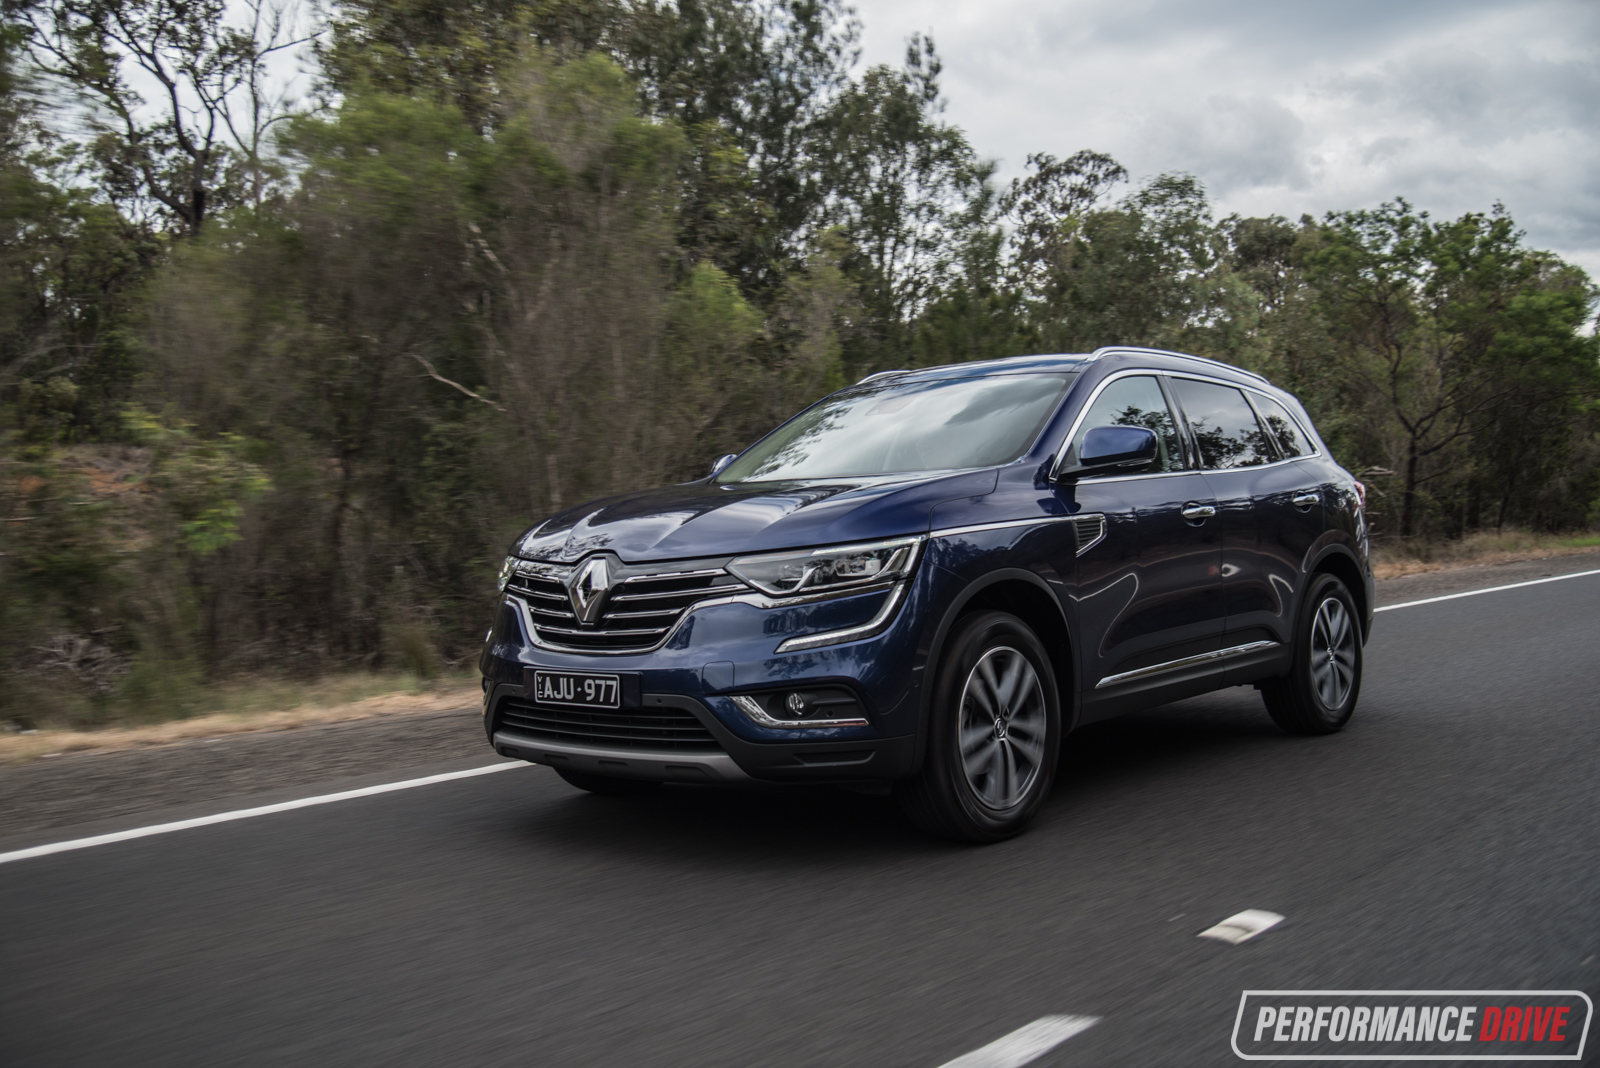 2017 Renault Koleos Intens 4x4 Review Video